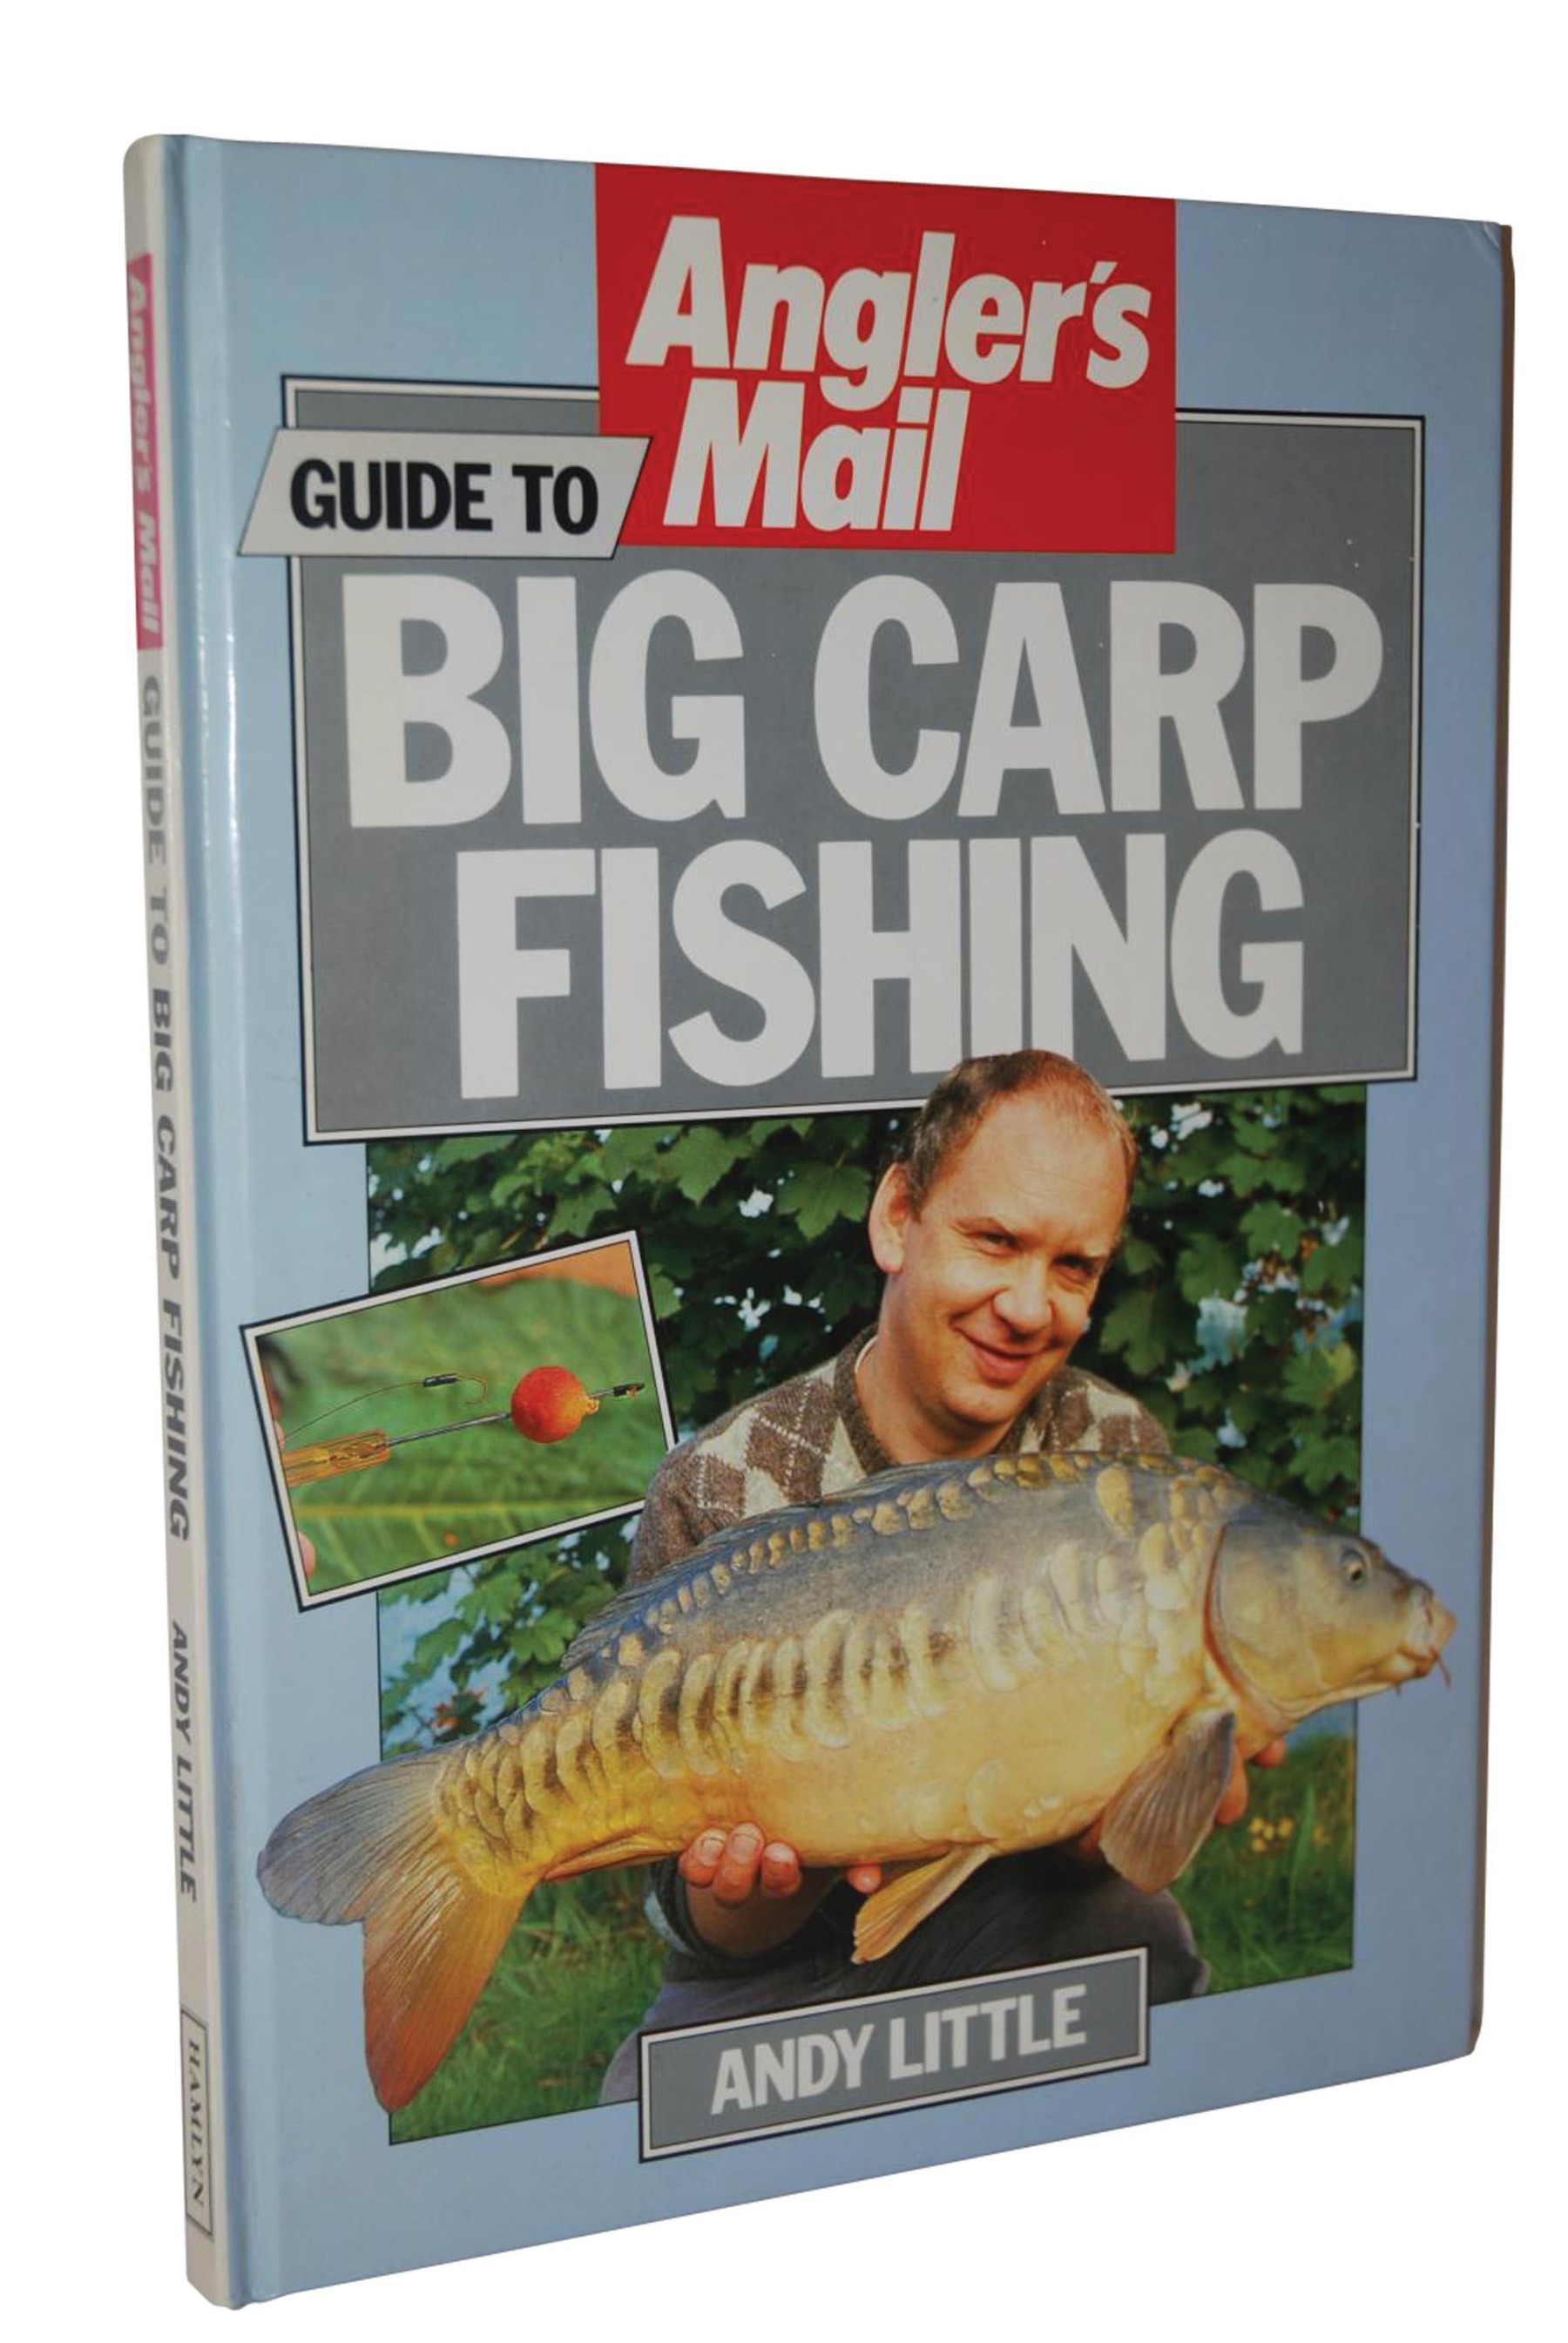 One of his best-sellers: Big Carp Fishing